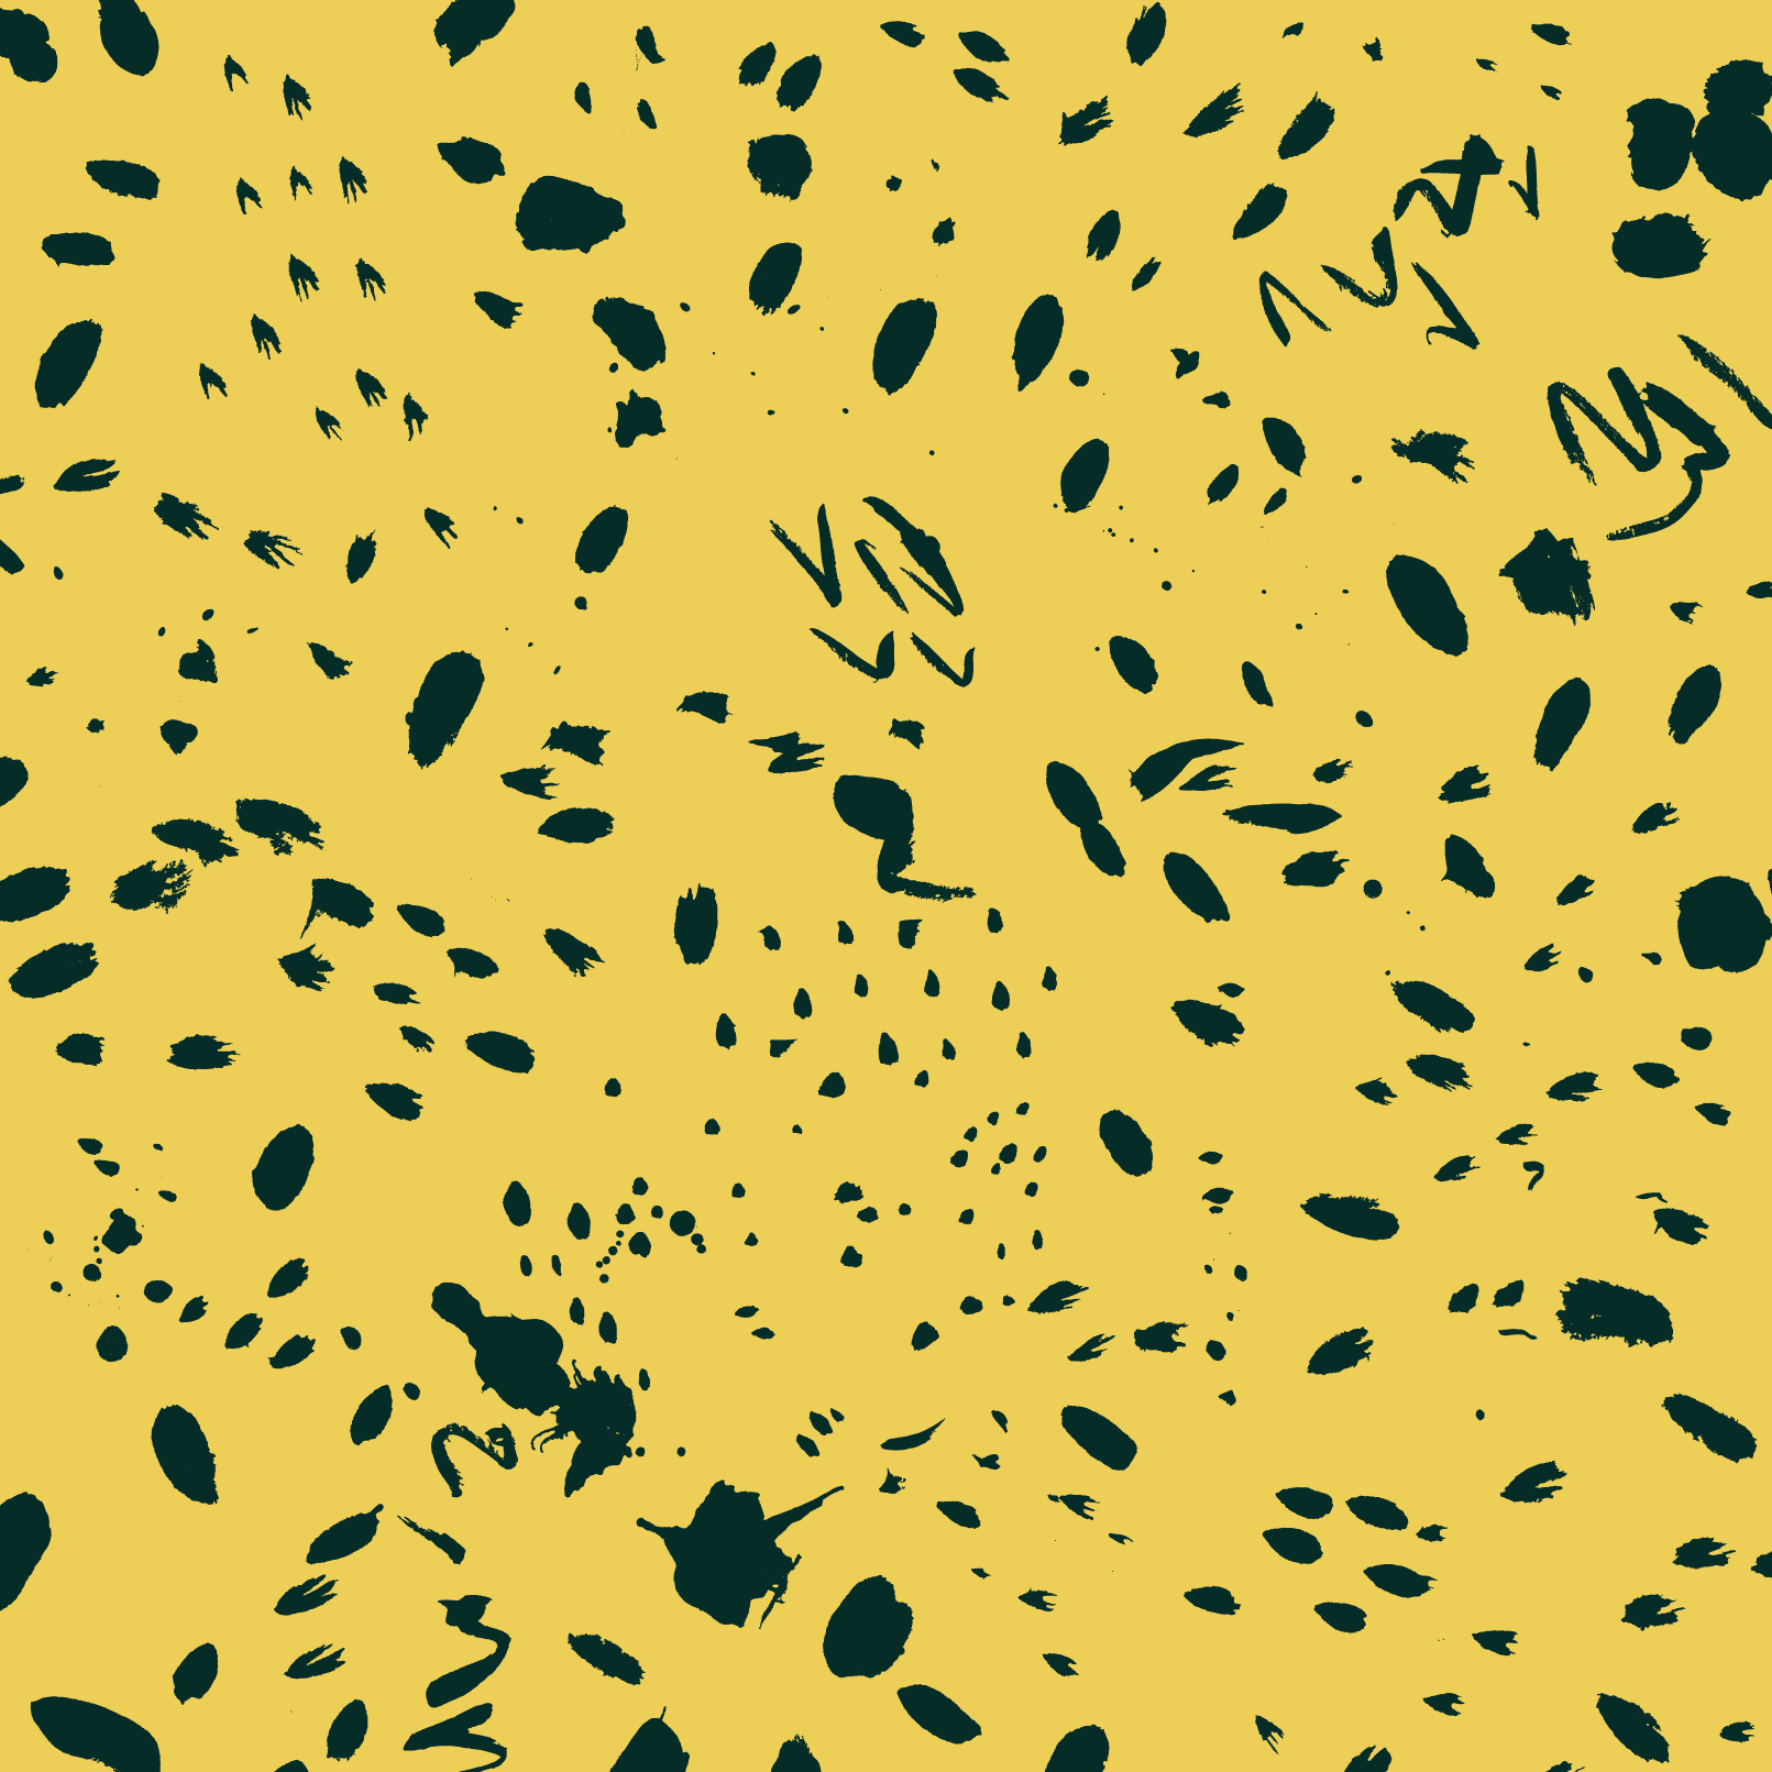 melissa boardman blobs yellow abstract pattern.png